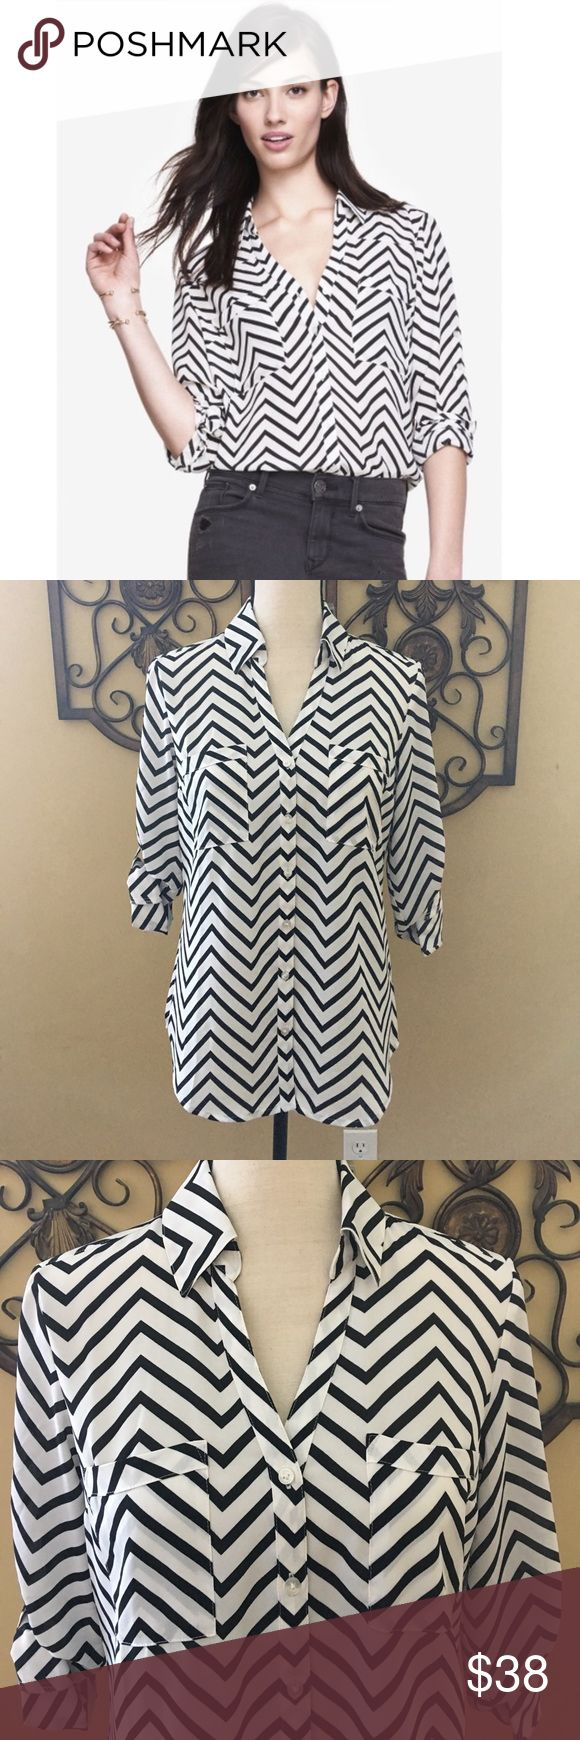 NWT! Express Portofino Chevron Shirt in Size S NWT! Express Black & White Chevron Roll Sleeve Portofino Shirt. Tucks Perfectly into a pencil skirt or pants for any season . 100% Polyester. Size S Express Tops Blouses